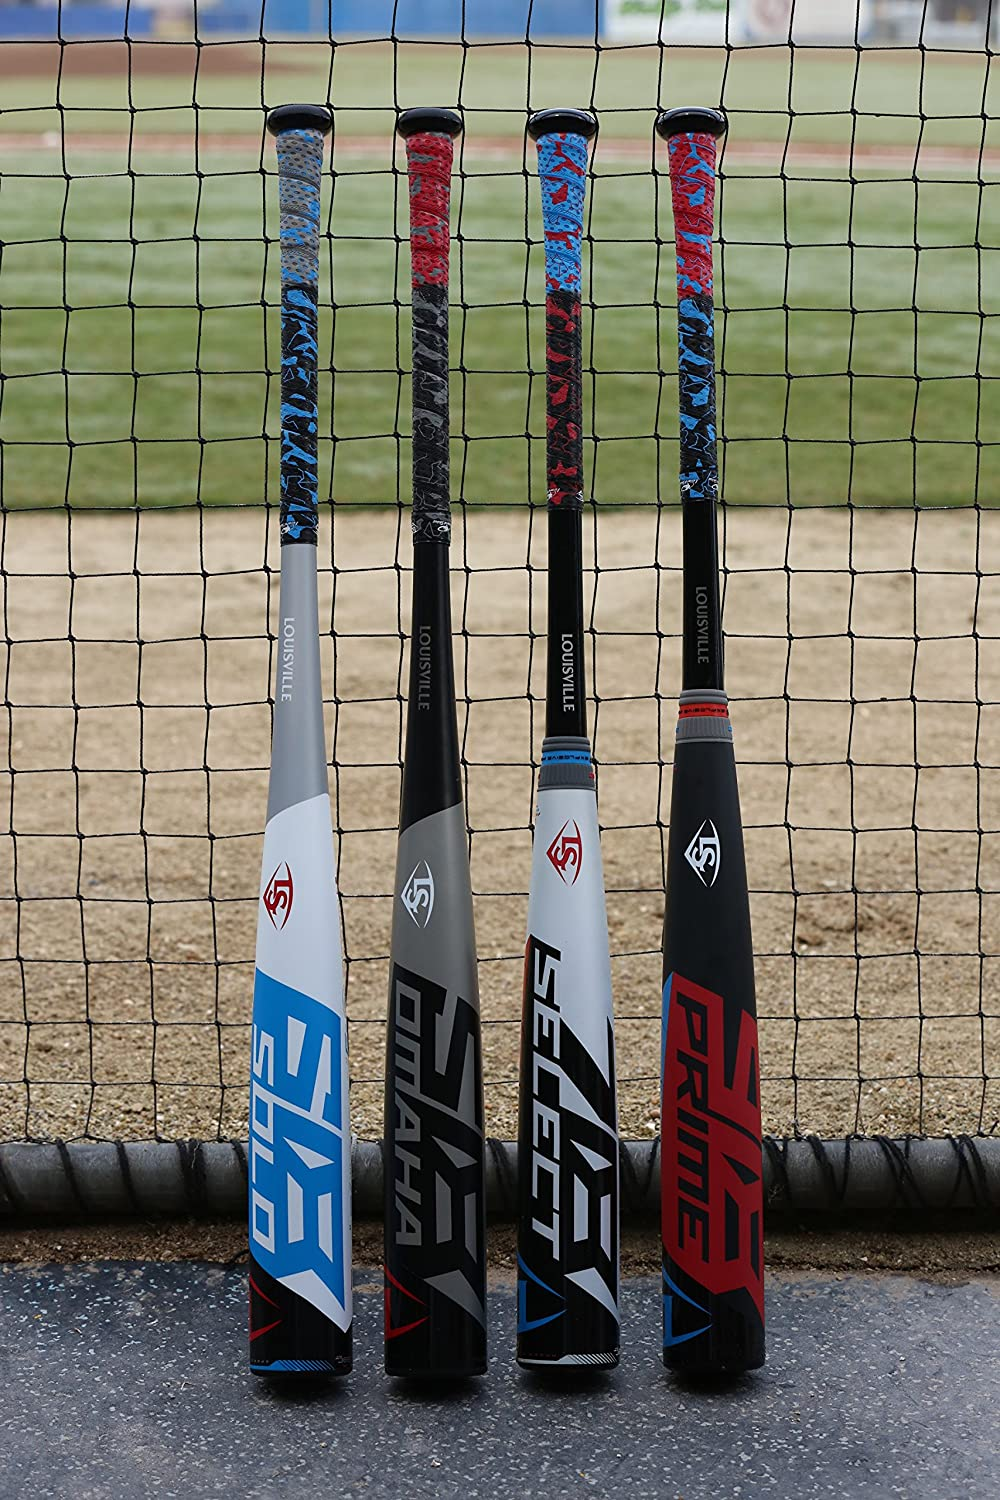 One Piece vs Two-Piece Composite Bats